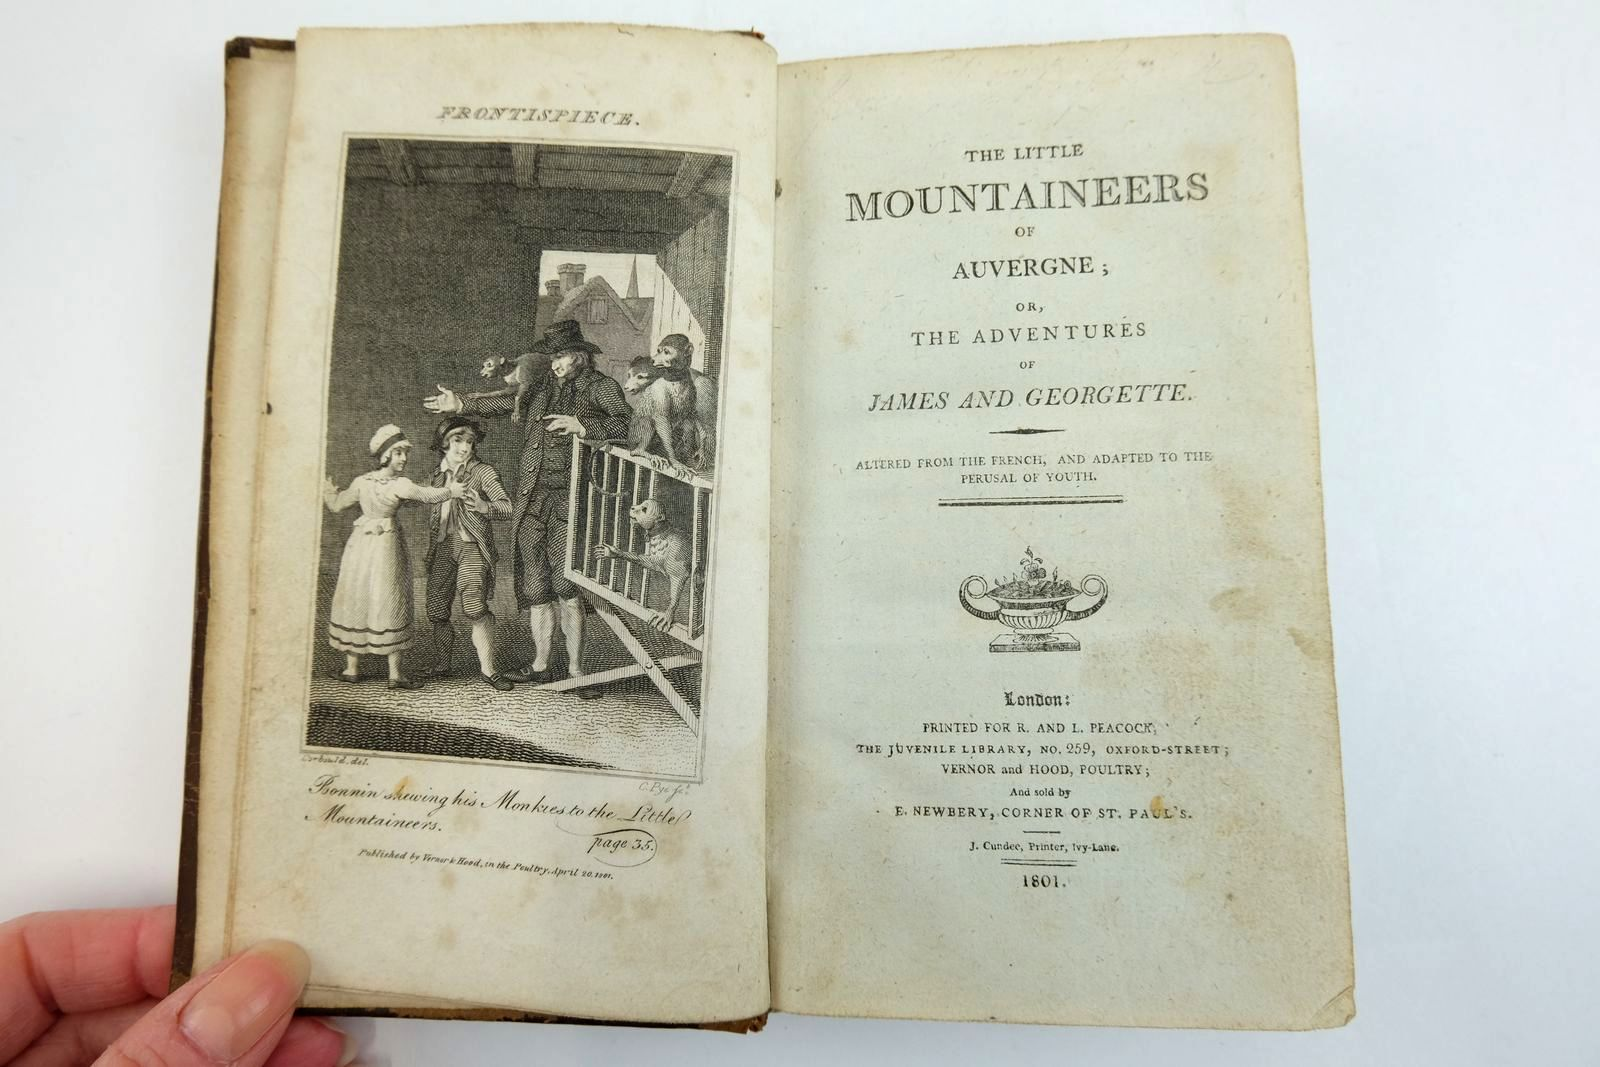 Photo of THE LITTLE MOUNTAINEERS OF AUVERGNE written by Ducray-Duminil, Francois Gillaume published by R. And L. Peacock (STOCK CODE: 2134189)  for sale by Stella & Rose's Books